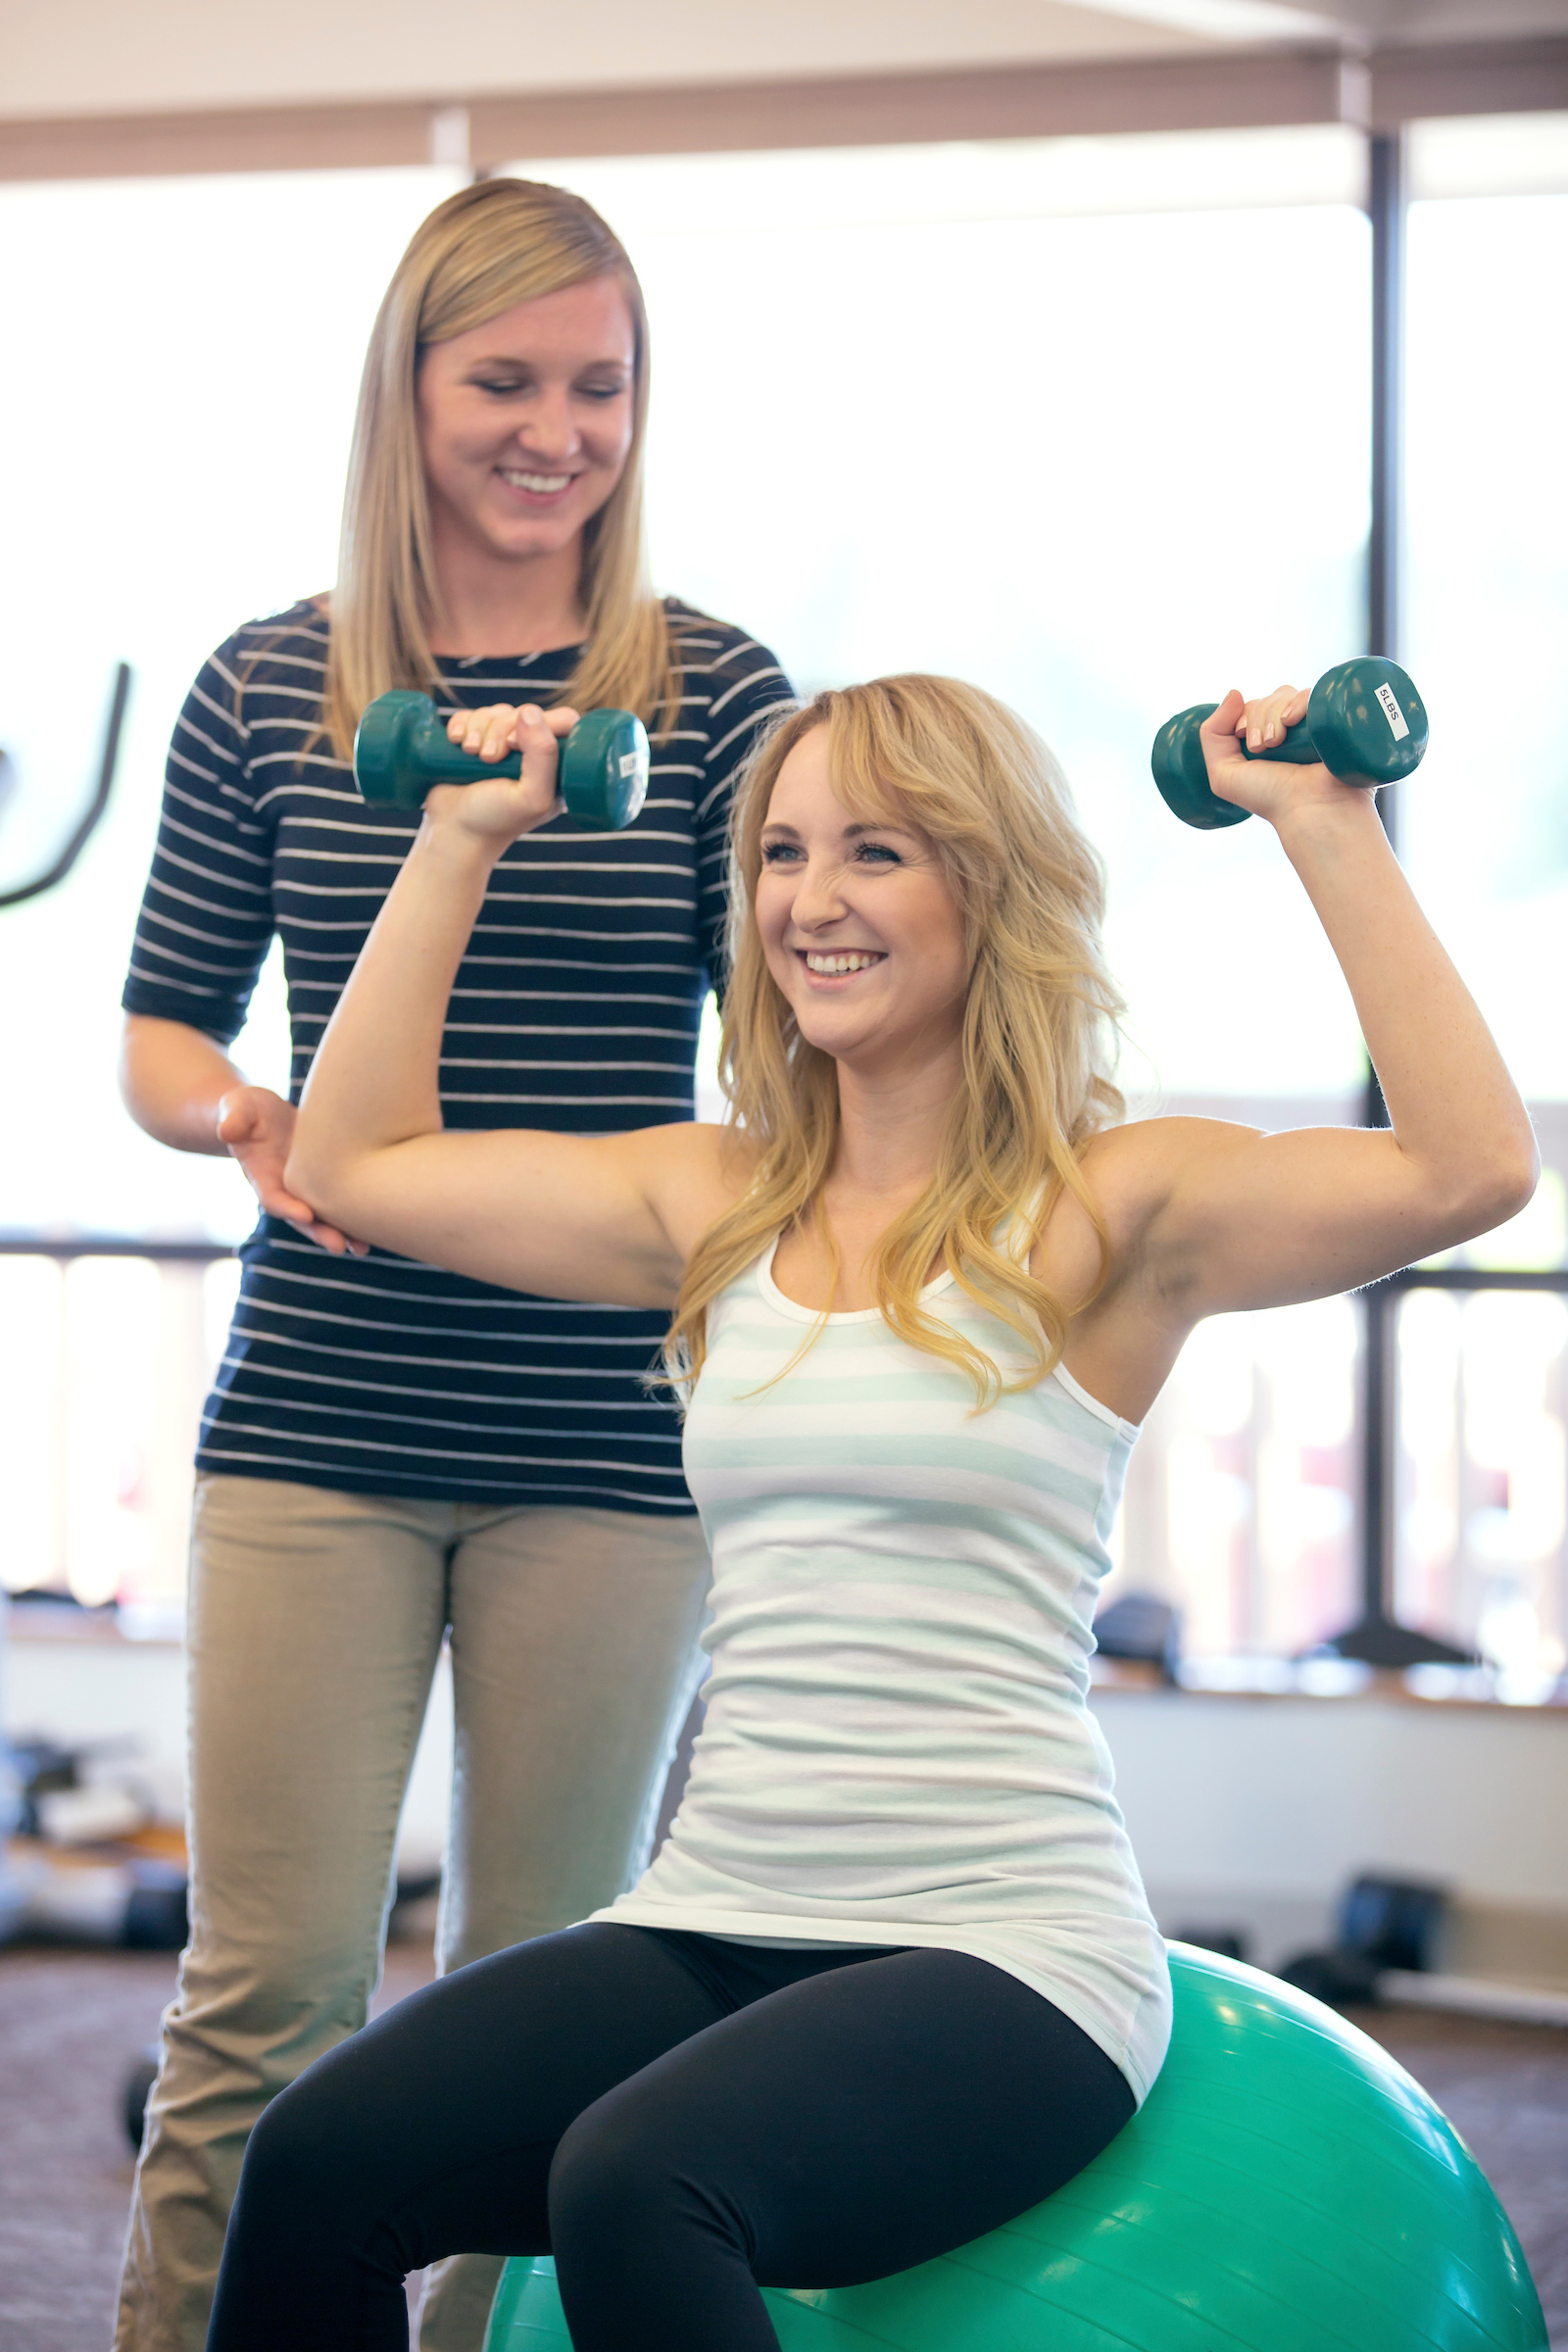 A physical therapist helps a young female patient with an exercise using weights.